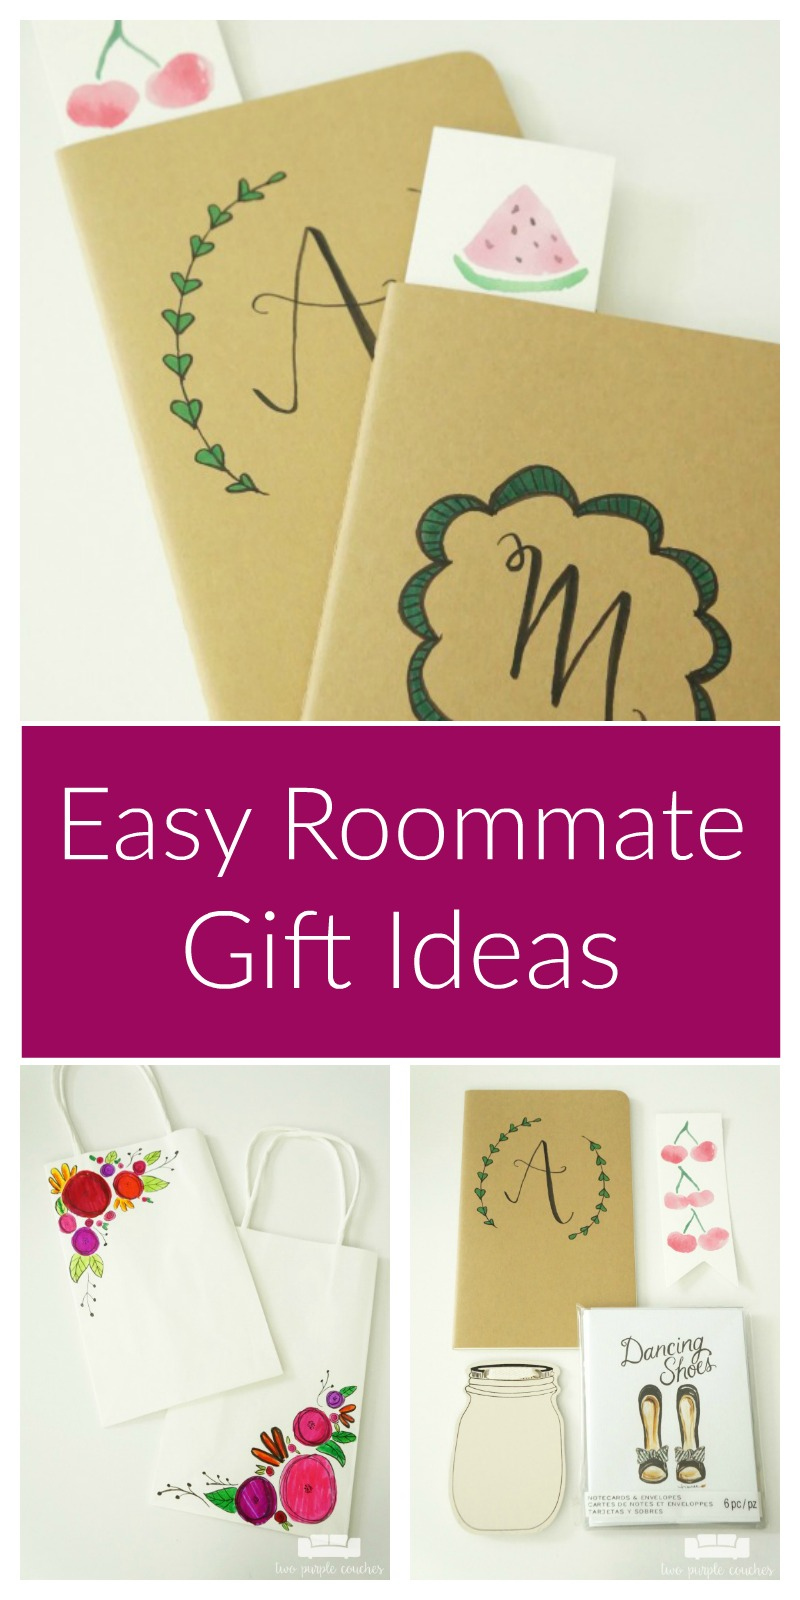 Easy blog conference roommate gifts you can make in minutes! Heading to a blog conference? Bring along a few small but thoughtful gifts for your roommates!